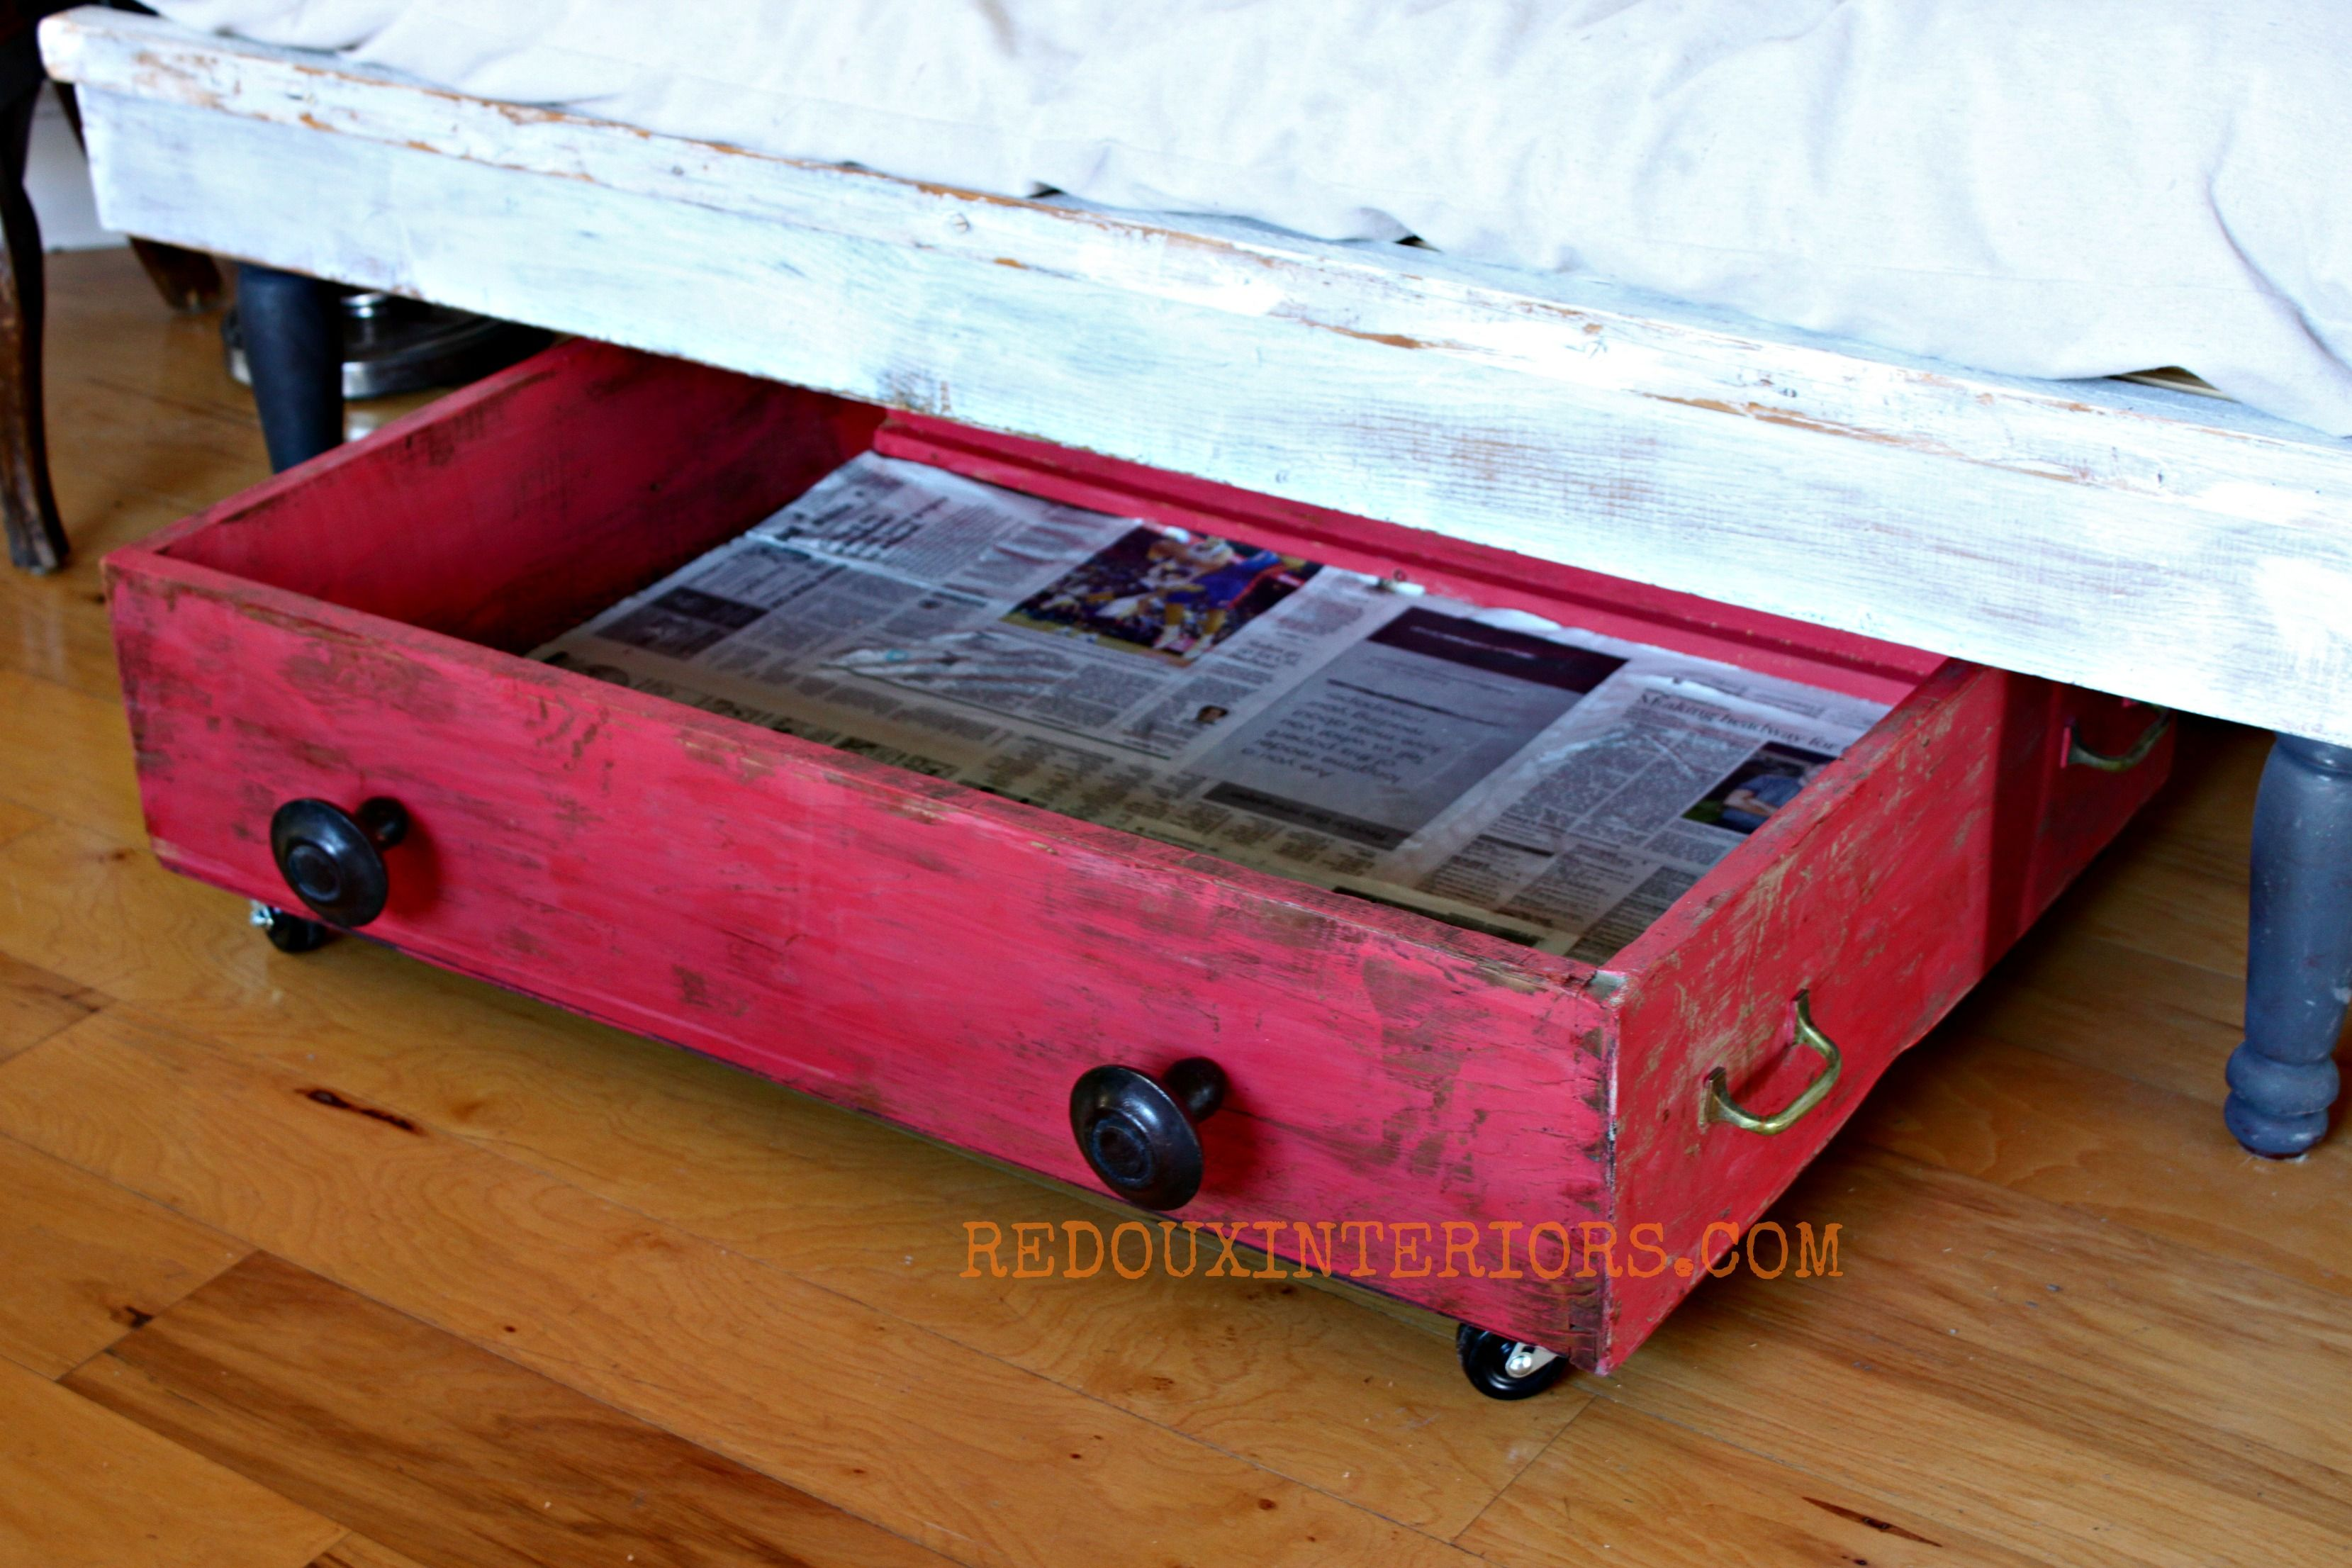 Under bench storage lined with newspaper redouxinteriors for the